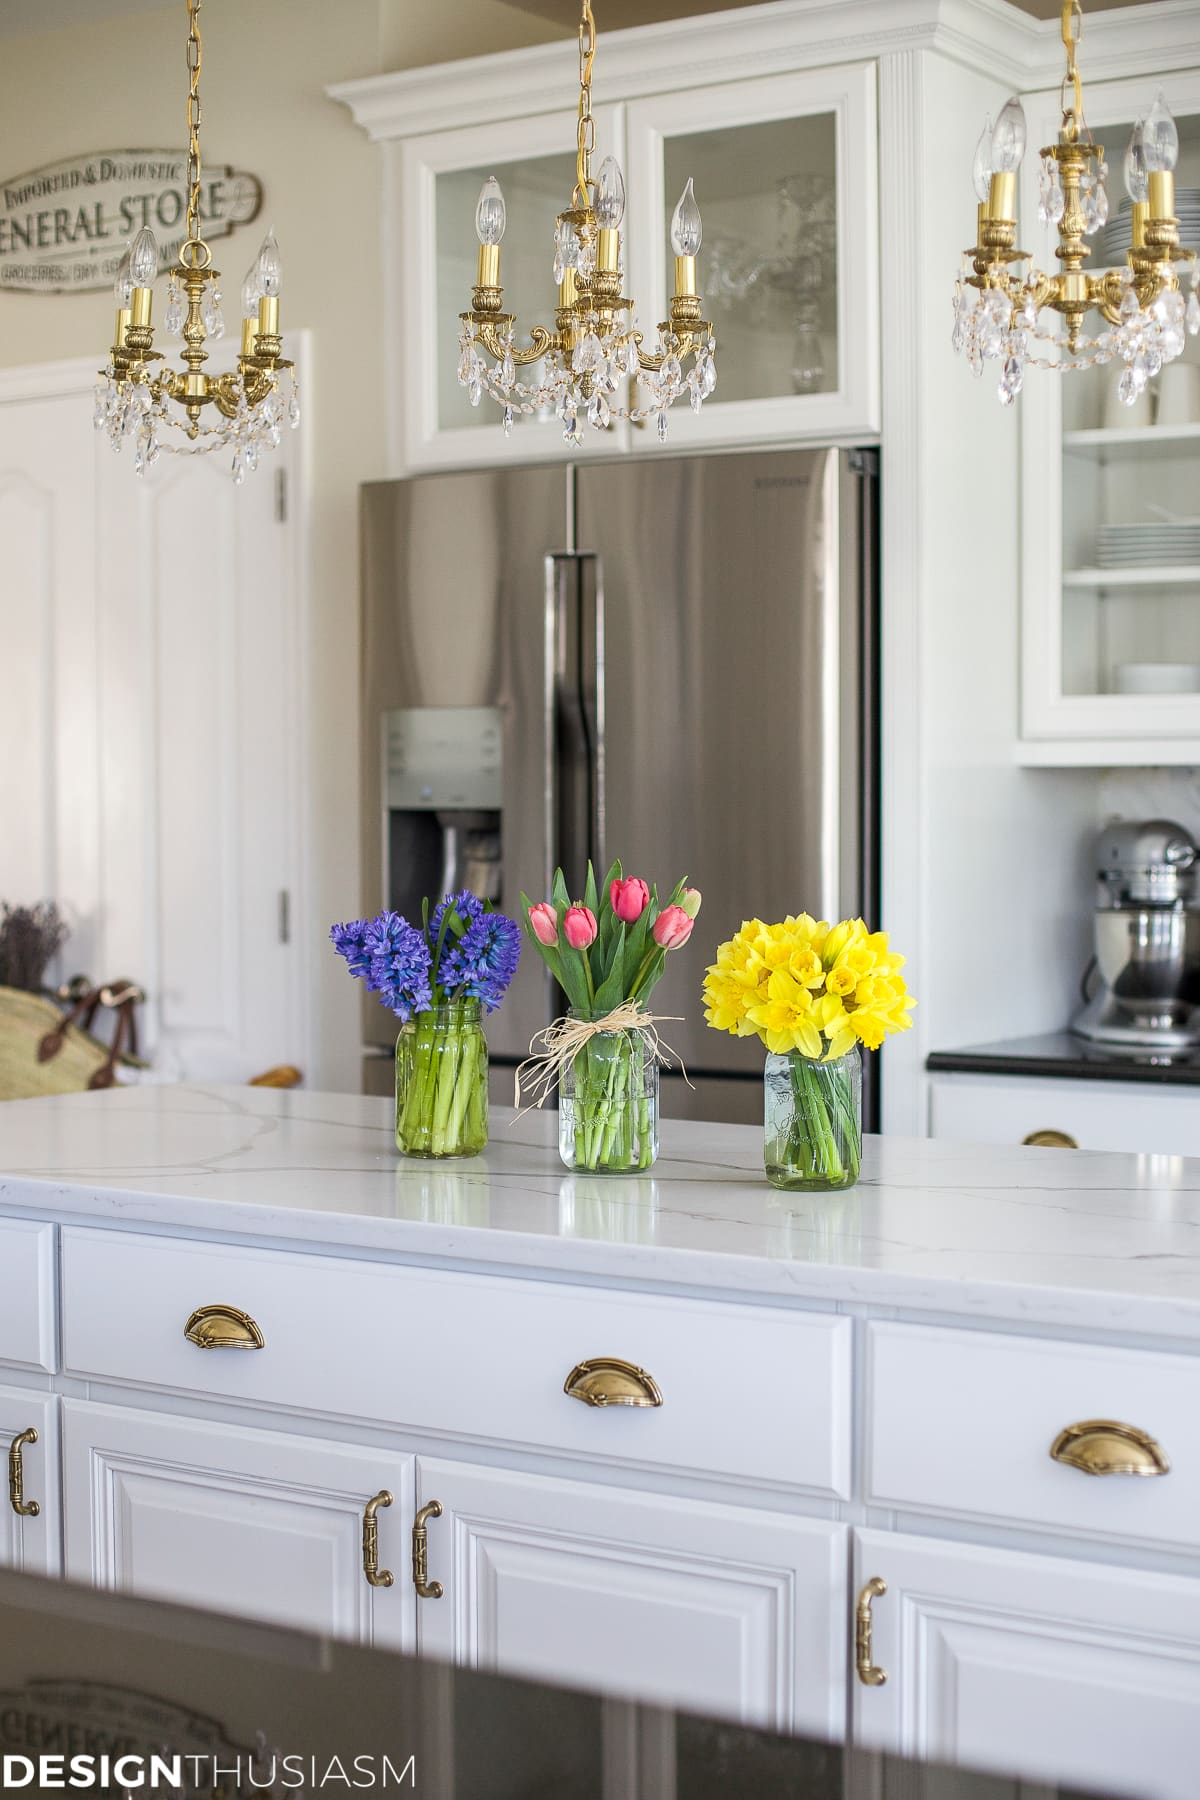 Decorating My Apartment Living Room: SPRING FARMHOUSE KITCHEN DETAILS